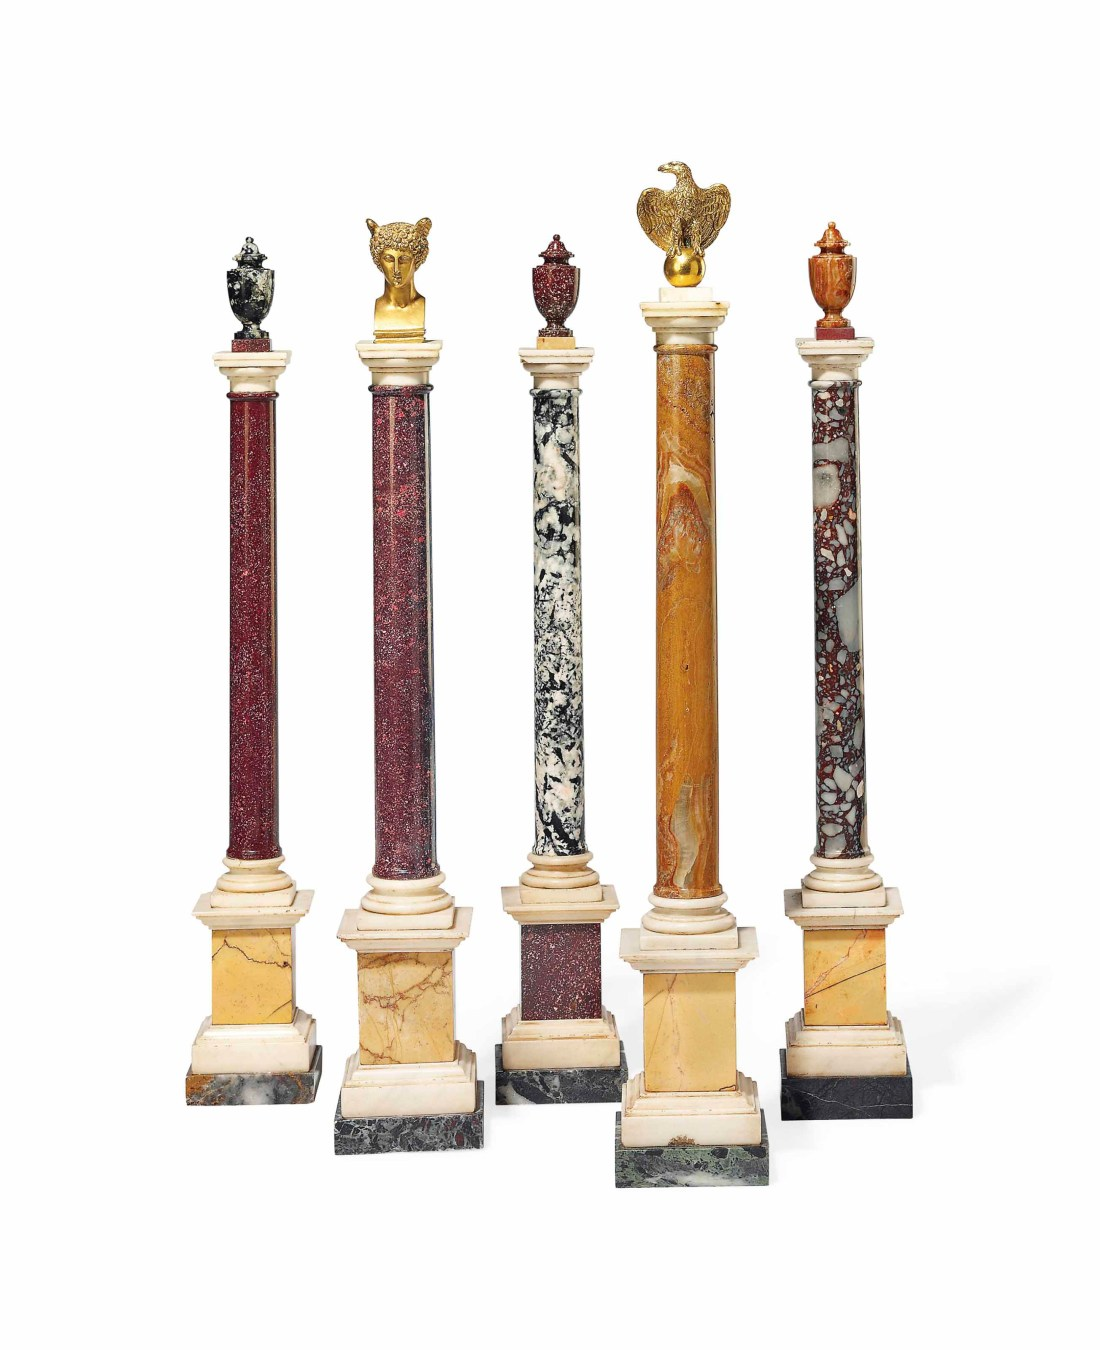 2013_CKS_01141_0103_000(a_set_of_five_ormolu-mounted_marble_and_hardstone_columns_after_the_an)